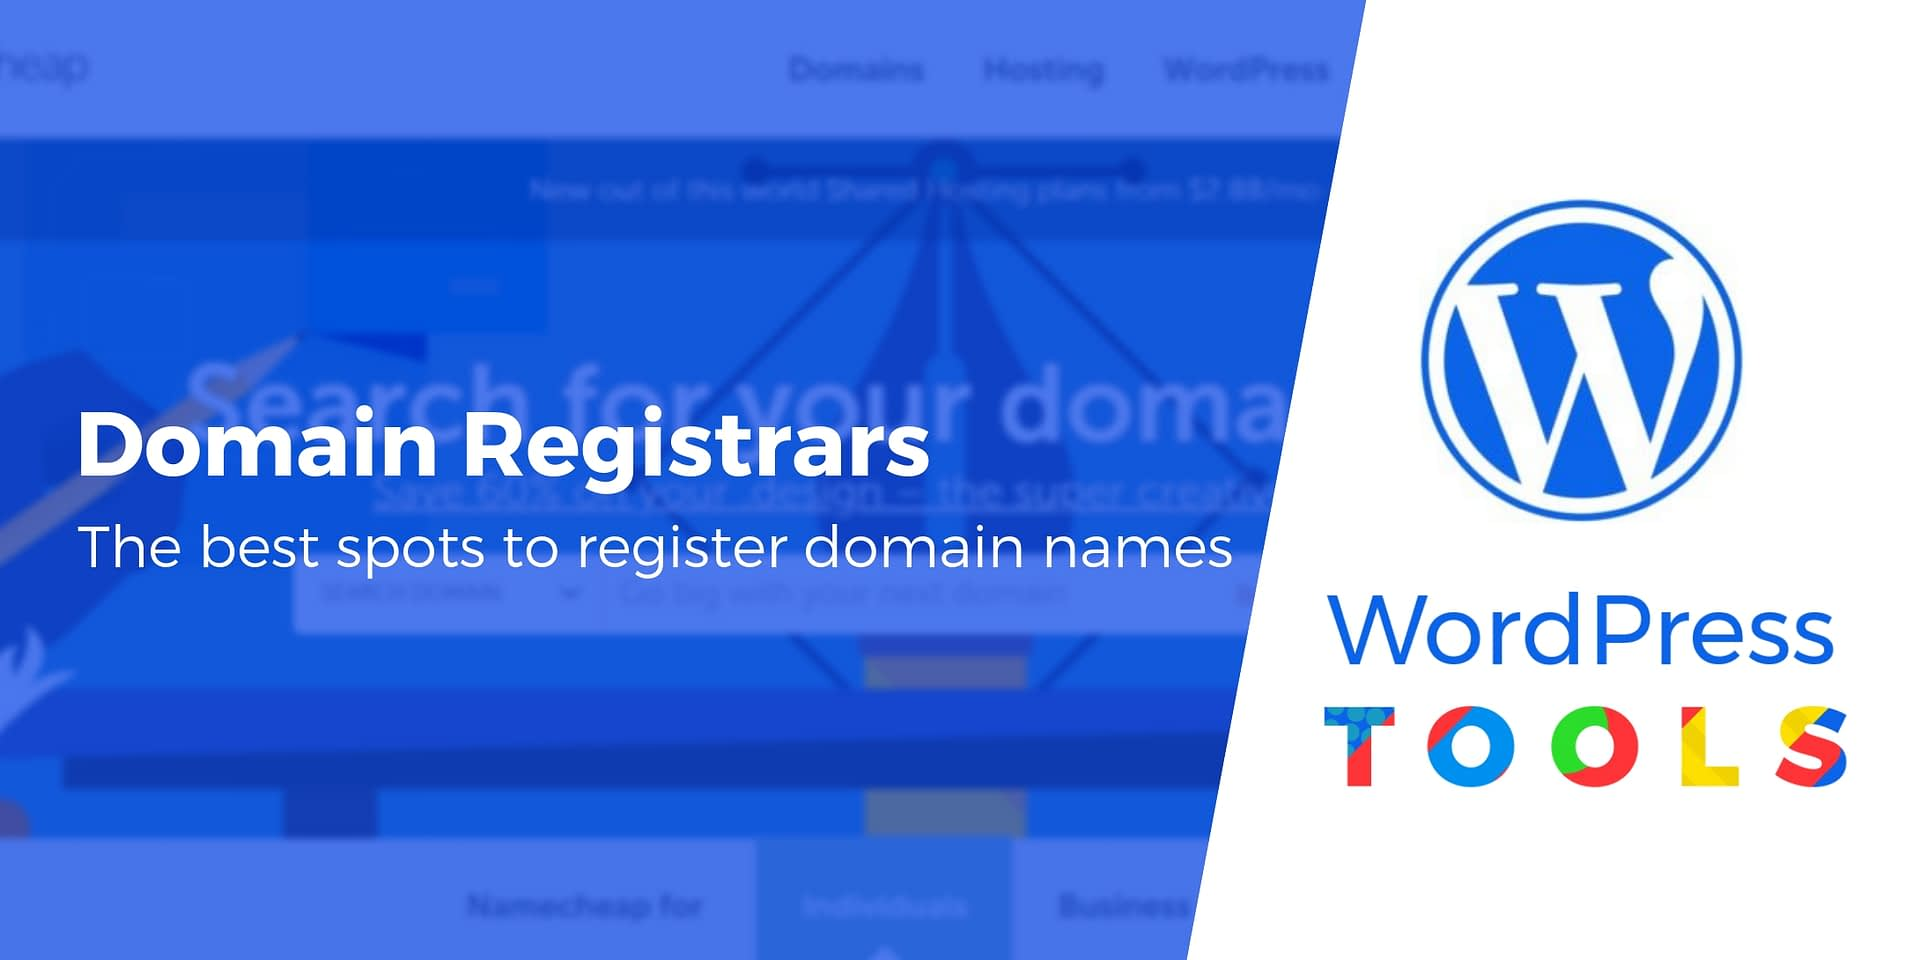 7 Best Domain Registrars: Who's the Cheapest & Should You